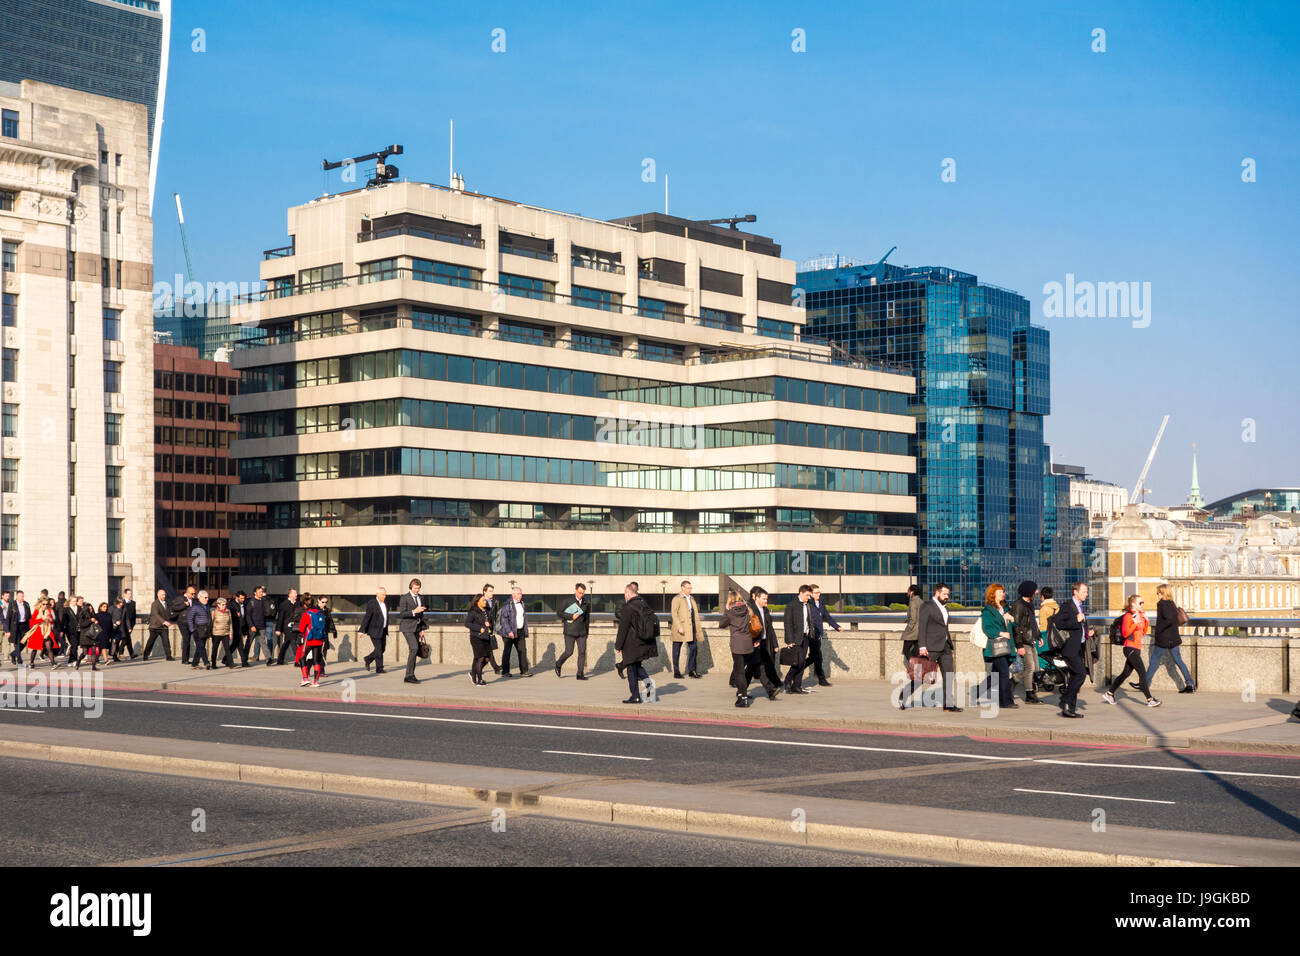 St Magnus House, 3 Lower Thames Street, seventies high rise office block on the bank of the Thames, City of London, - Stock Image